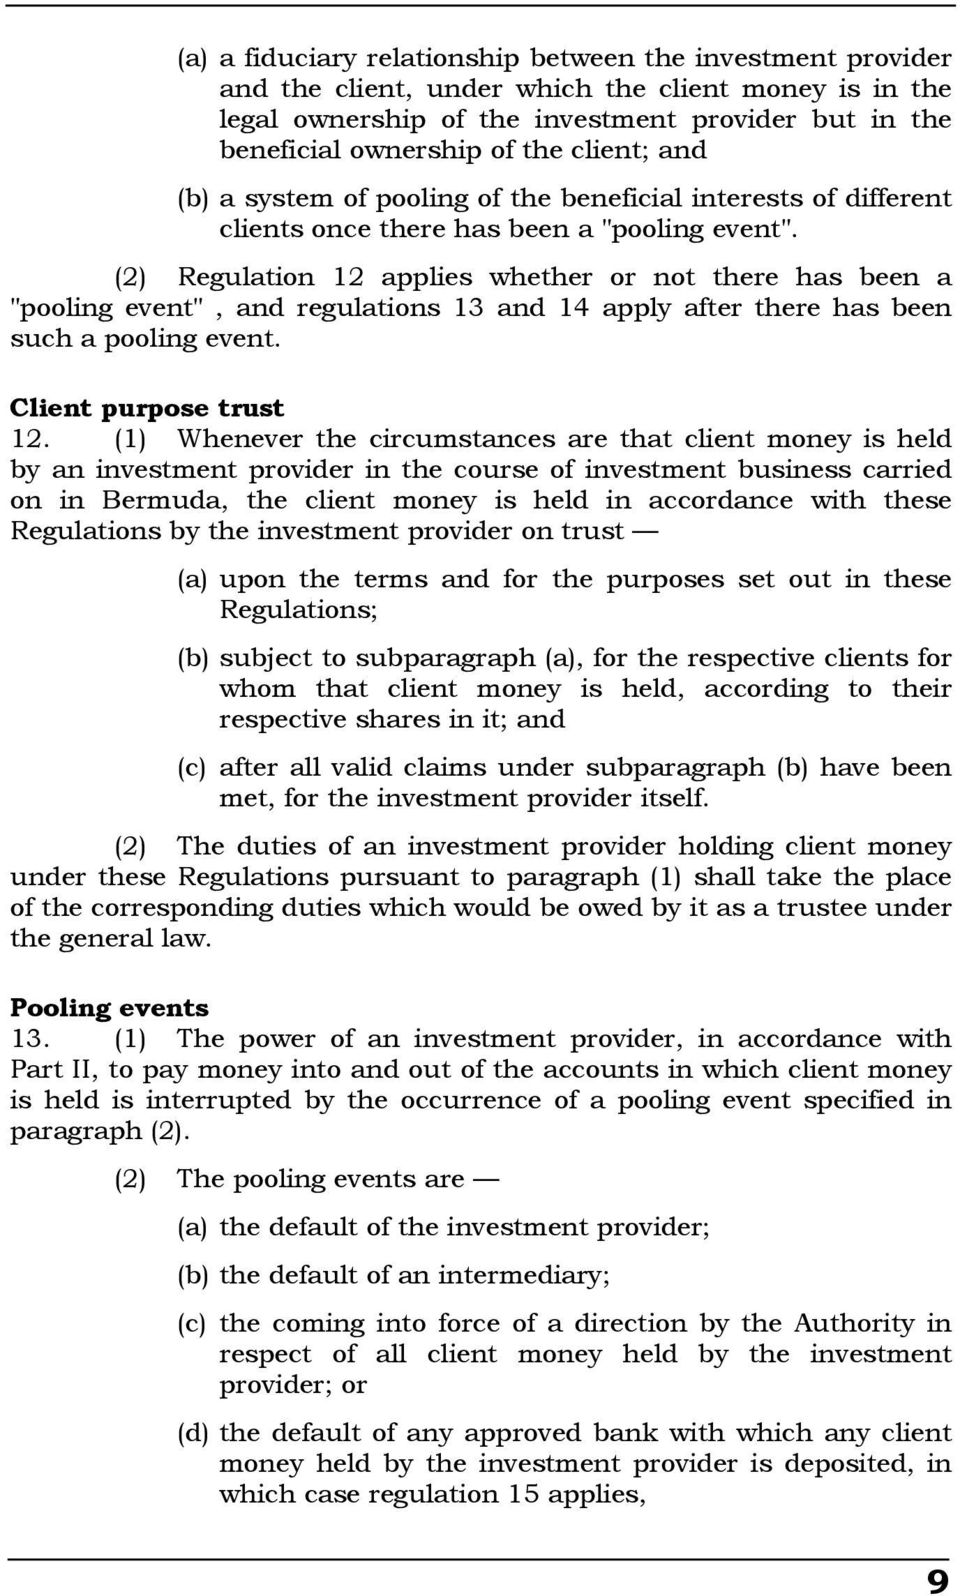 "(2) Regulation 12 applies whether or not there has been a ""pooling event"", and regulations 13 and 14 apply after there has been such a pooling event. Client purpose trust 12."